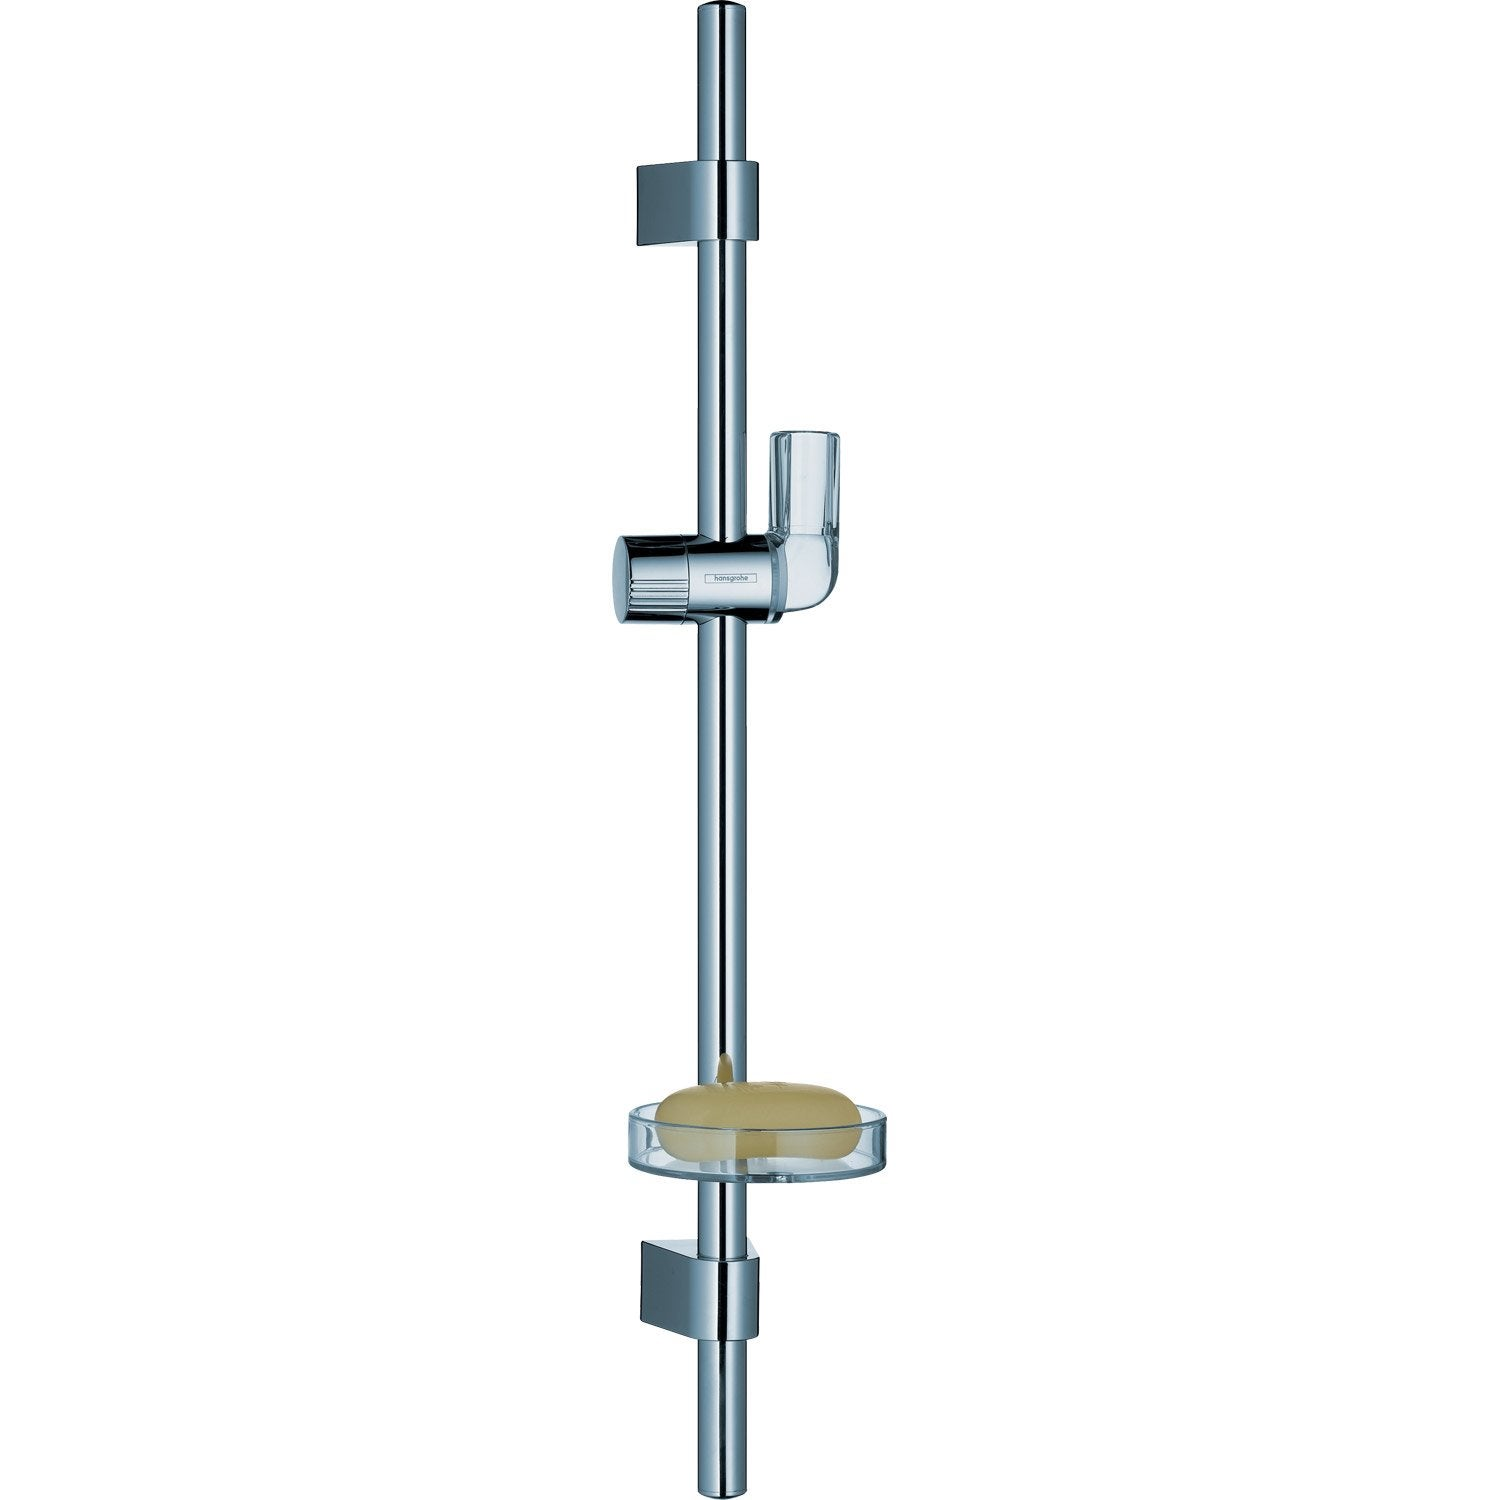 Barre de douche chrome hansgrohe unica vario leroy merlin - Douche encastrable hansgrohe ...